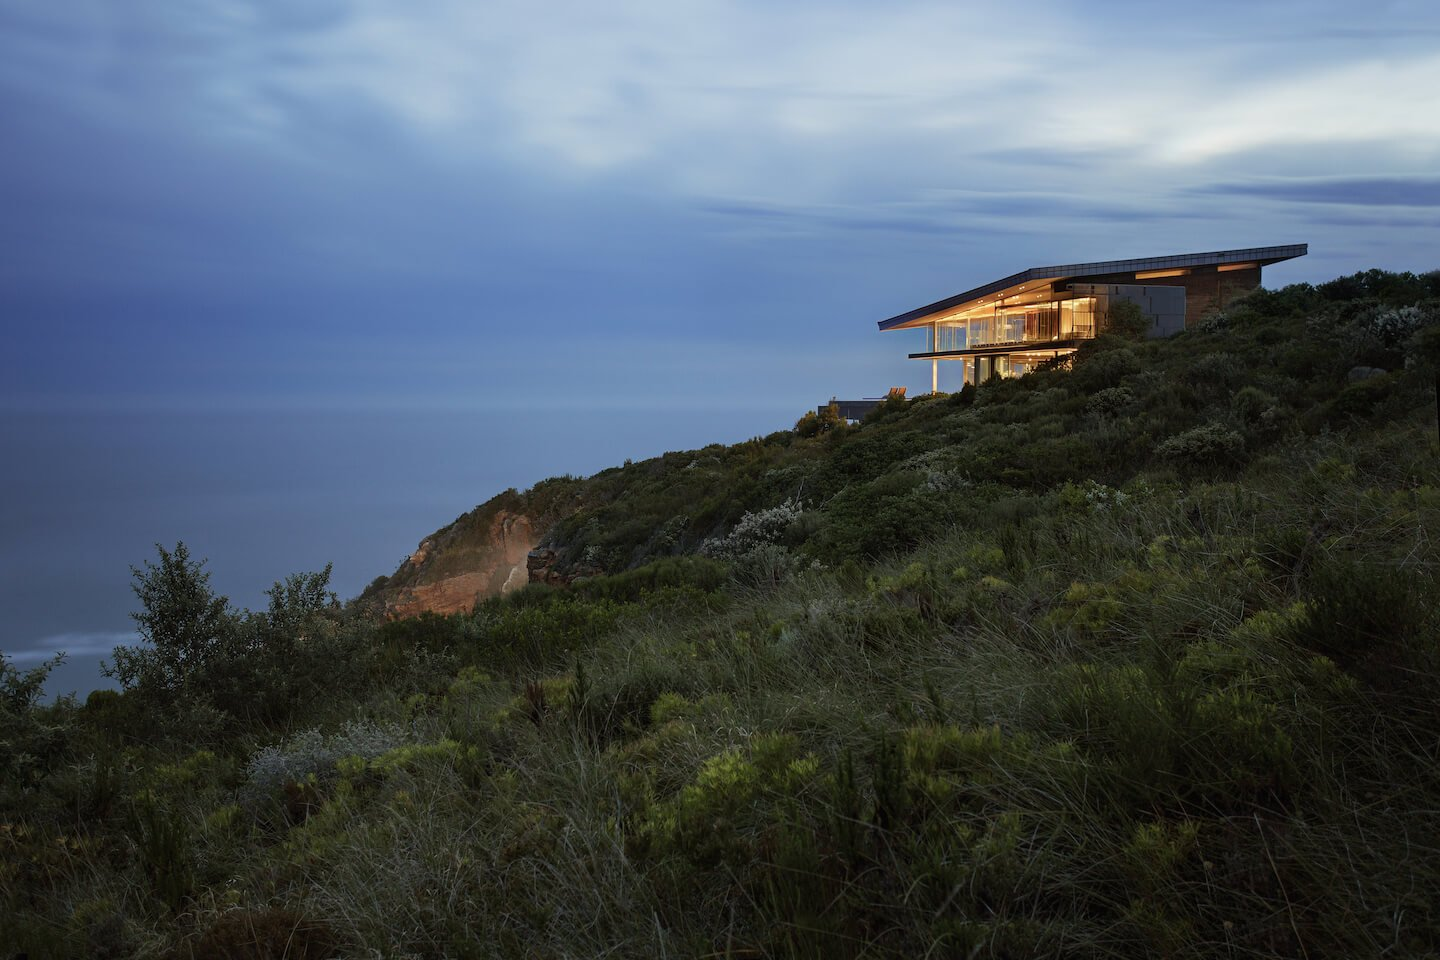 Profile view of the landscape highlights the blended-in nature of the structure, with a roof slant paralleling the slope. Floor to ceiling glass allows for spectacular ocean views.